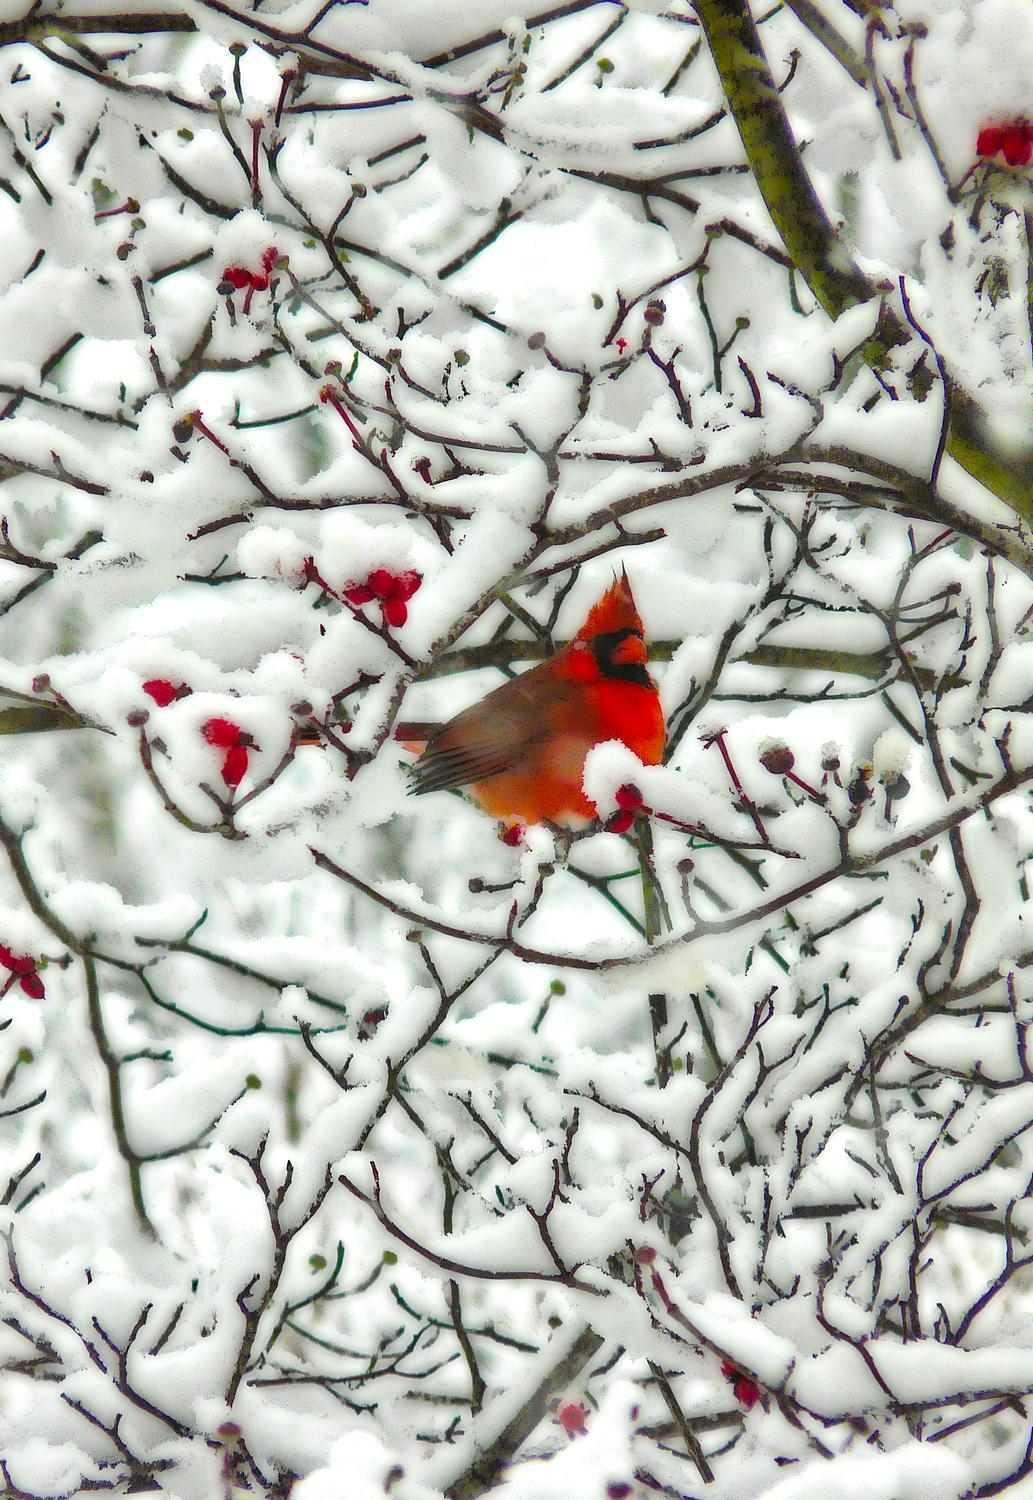 cardinal all puffed up in a snowy tree-  Panasonic DMC-FZ18 - Mr. Cardinal, all puffed up, trying to stay warm. - Tony Karp, design, art, photography, techno-impressionist, techno-impressionism, aerial photography , drone , drones , dji , mavic pro , video , 3D printing - Books -